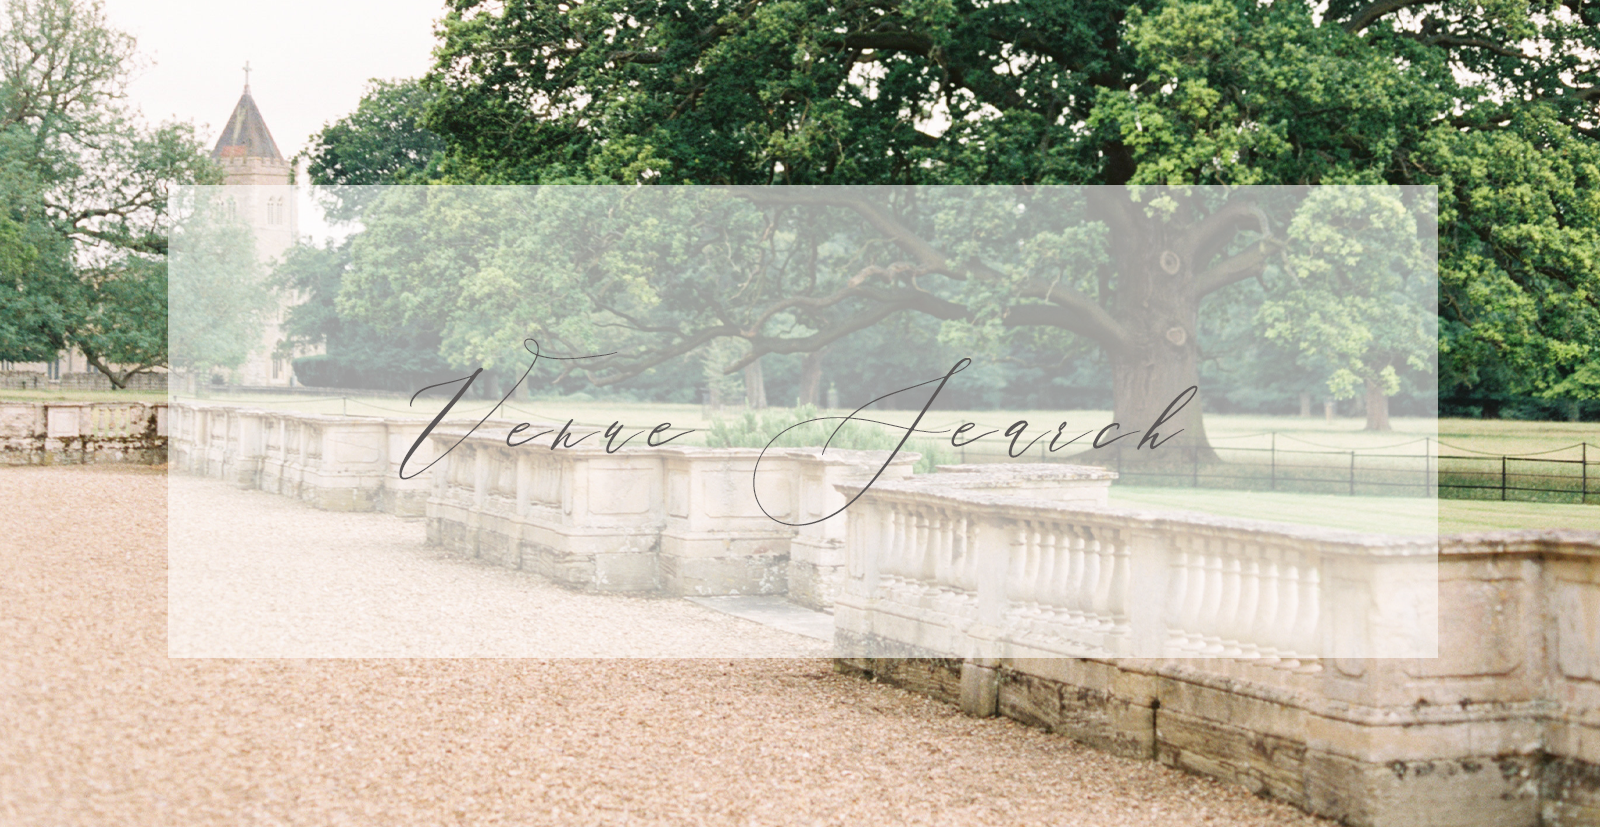 Luxury Wedding Planning | Venue Search | English Country House Wedding English Wedding English Country Manor Wedding Cotswolds Wedding European Wedding | Nicole Colwell Photography.png